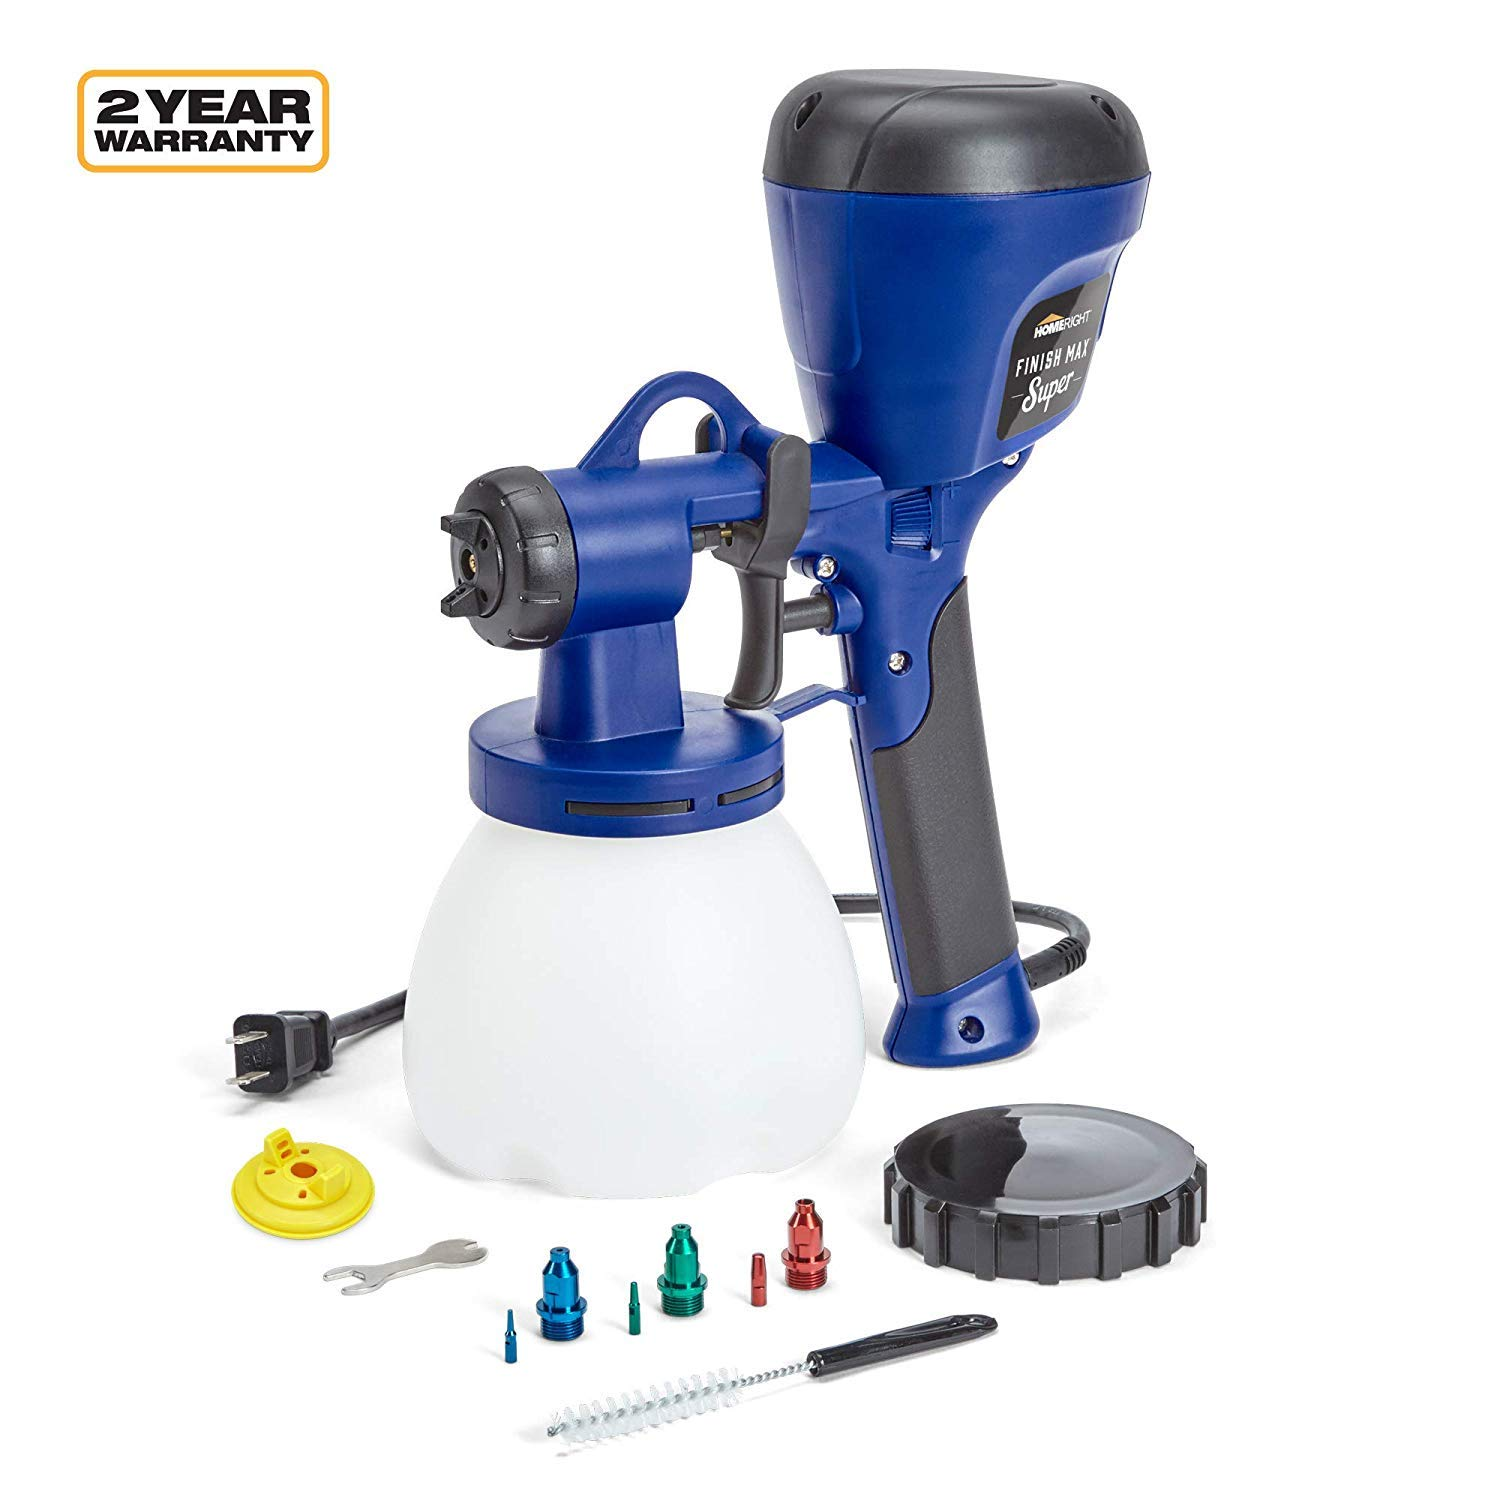 HomeRight C800971.A Super Finish Max Extra Power Painter, Home Sprayer HVLP Spray Gun for Painting Projects, Blue by HomeRight